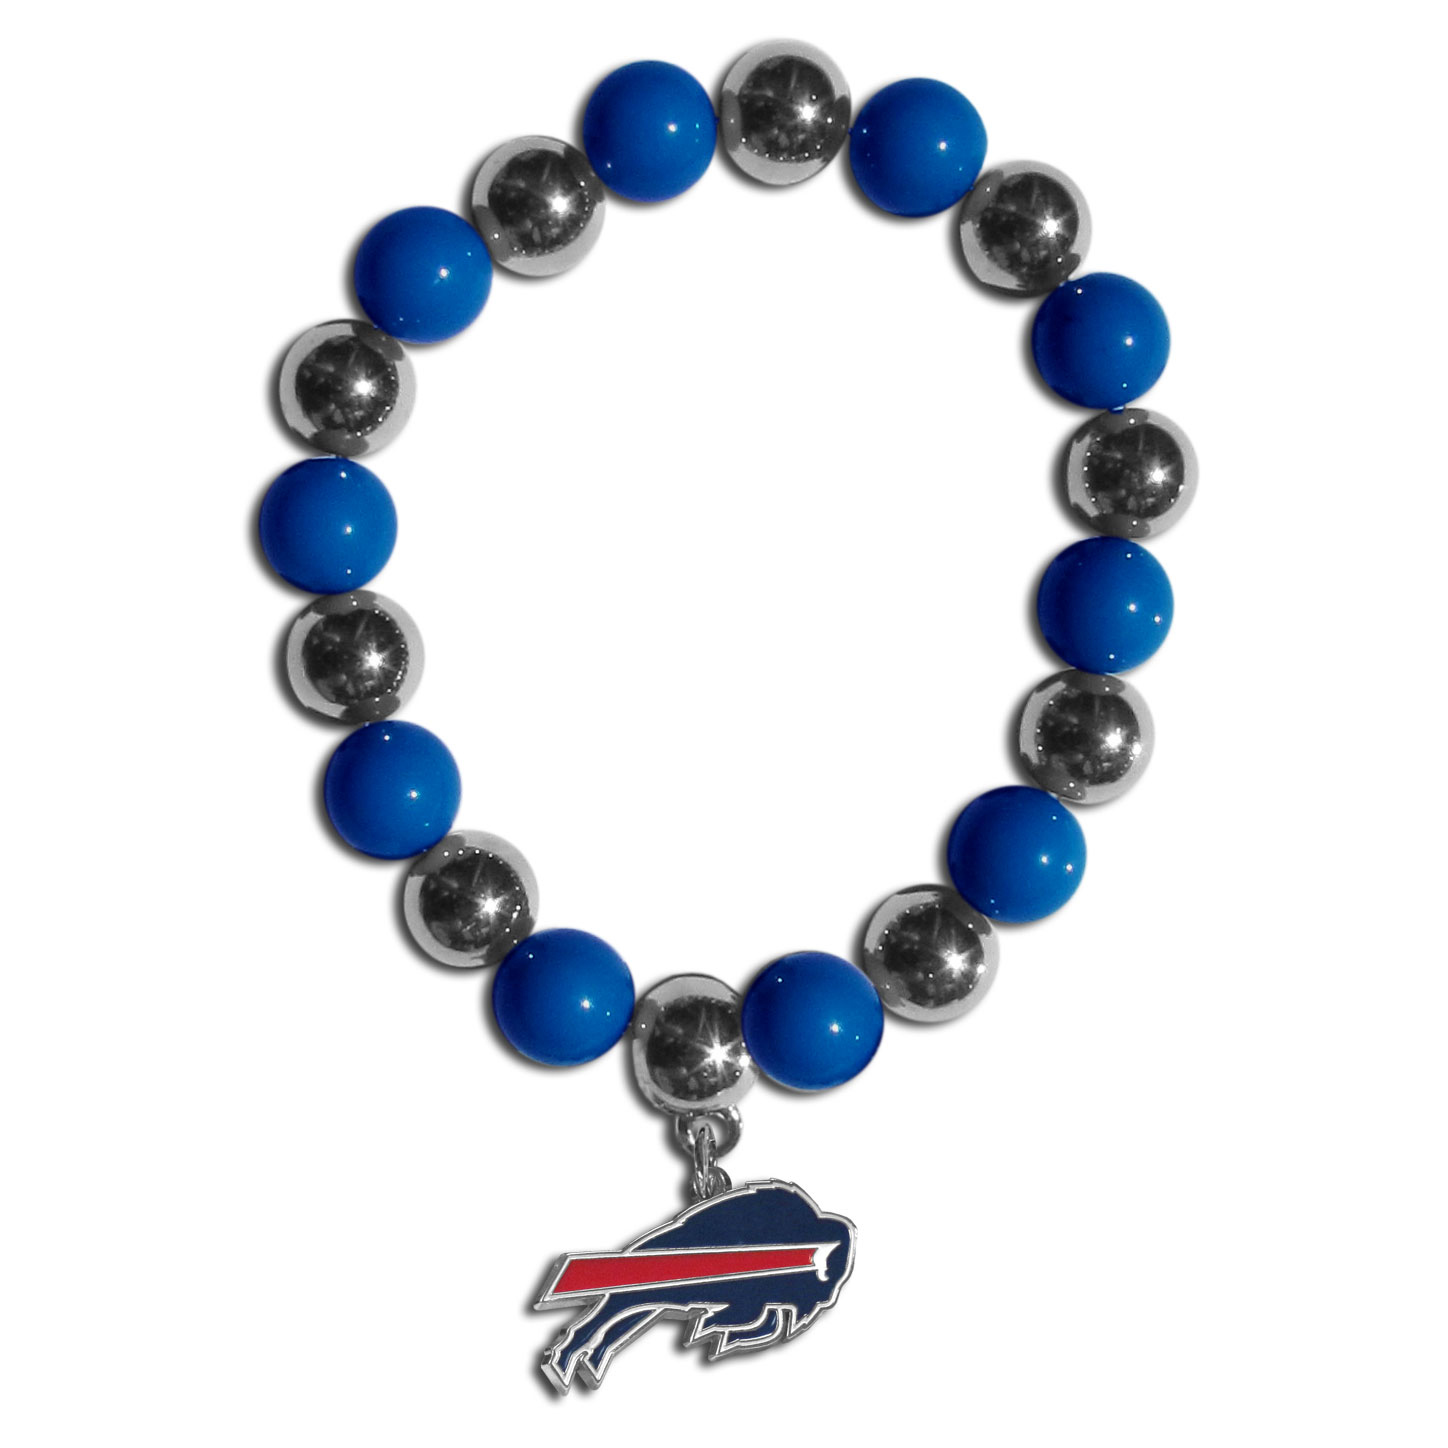 Buffalo Bills Chrome Bead Bracelet - Flash your Buffalo Bills spirit with this bright stretch bracelet. This new bracelet features alternating charm & team beads on stretch cord with a nickel-free enameled chrome team charm. This bracelet adds the perfect pop of color to your game day accessories.